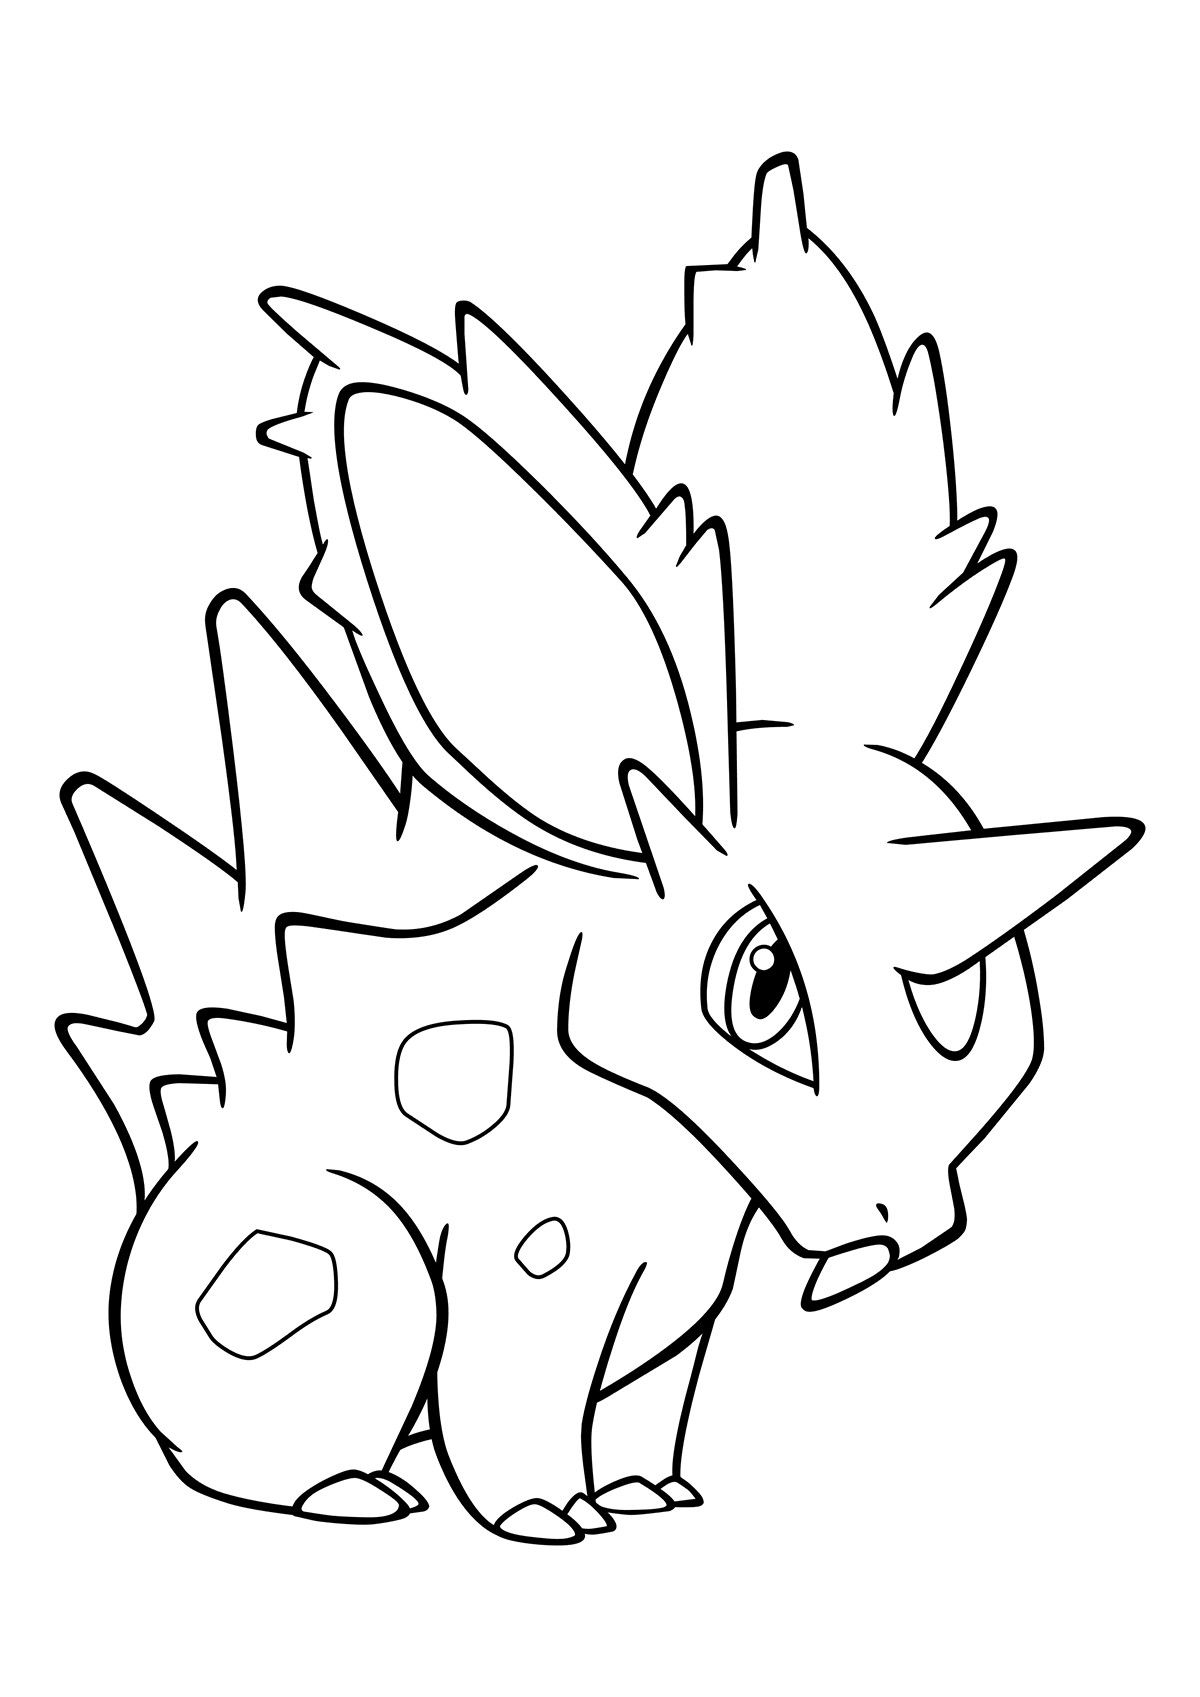 Pokemon Go Nidoran Coloring Pages Coloring Pages Pokemon Coloring Pages Printable Pokemon Coloring Pages